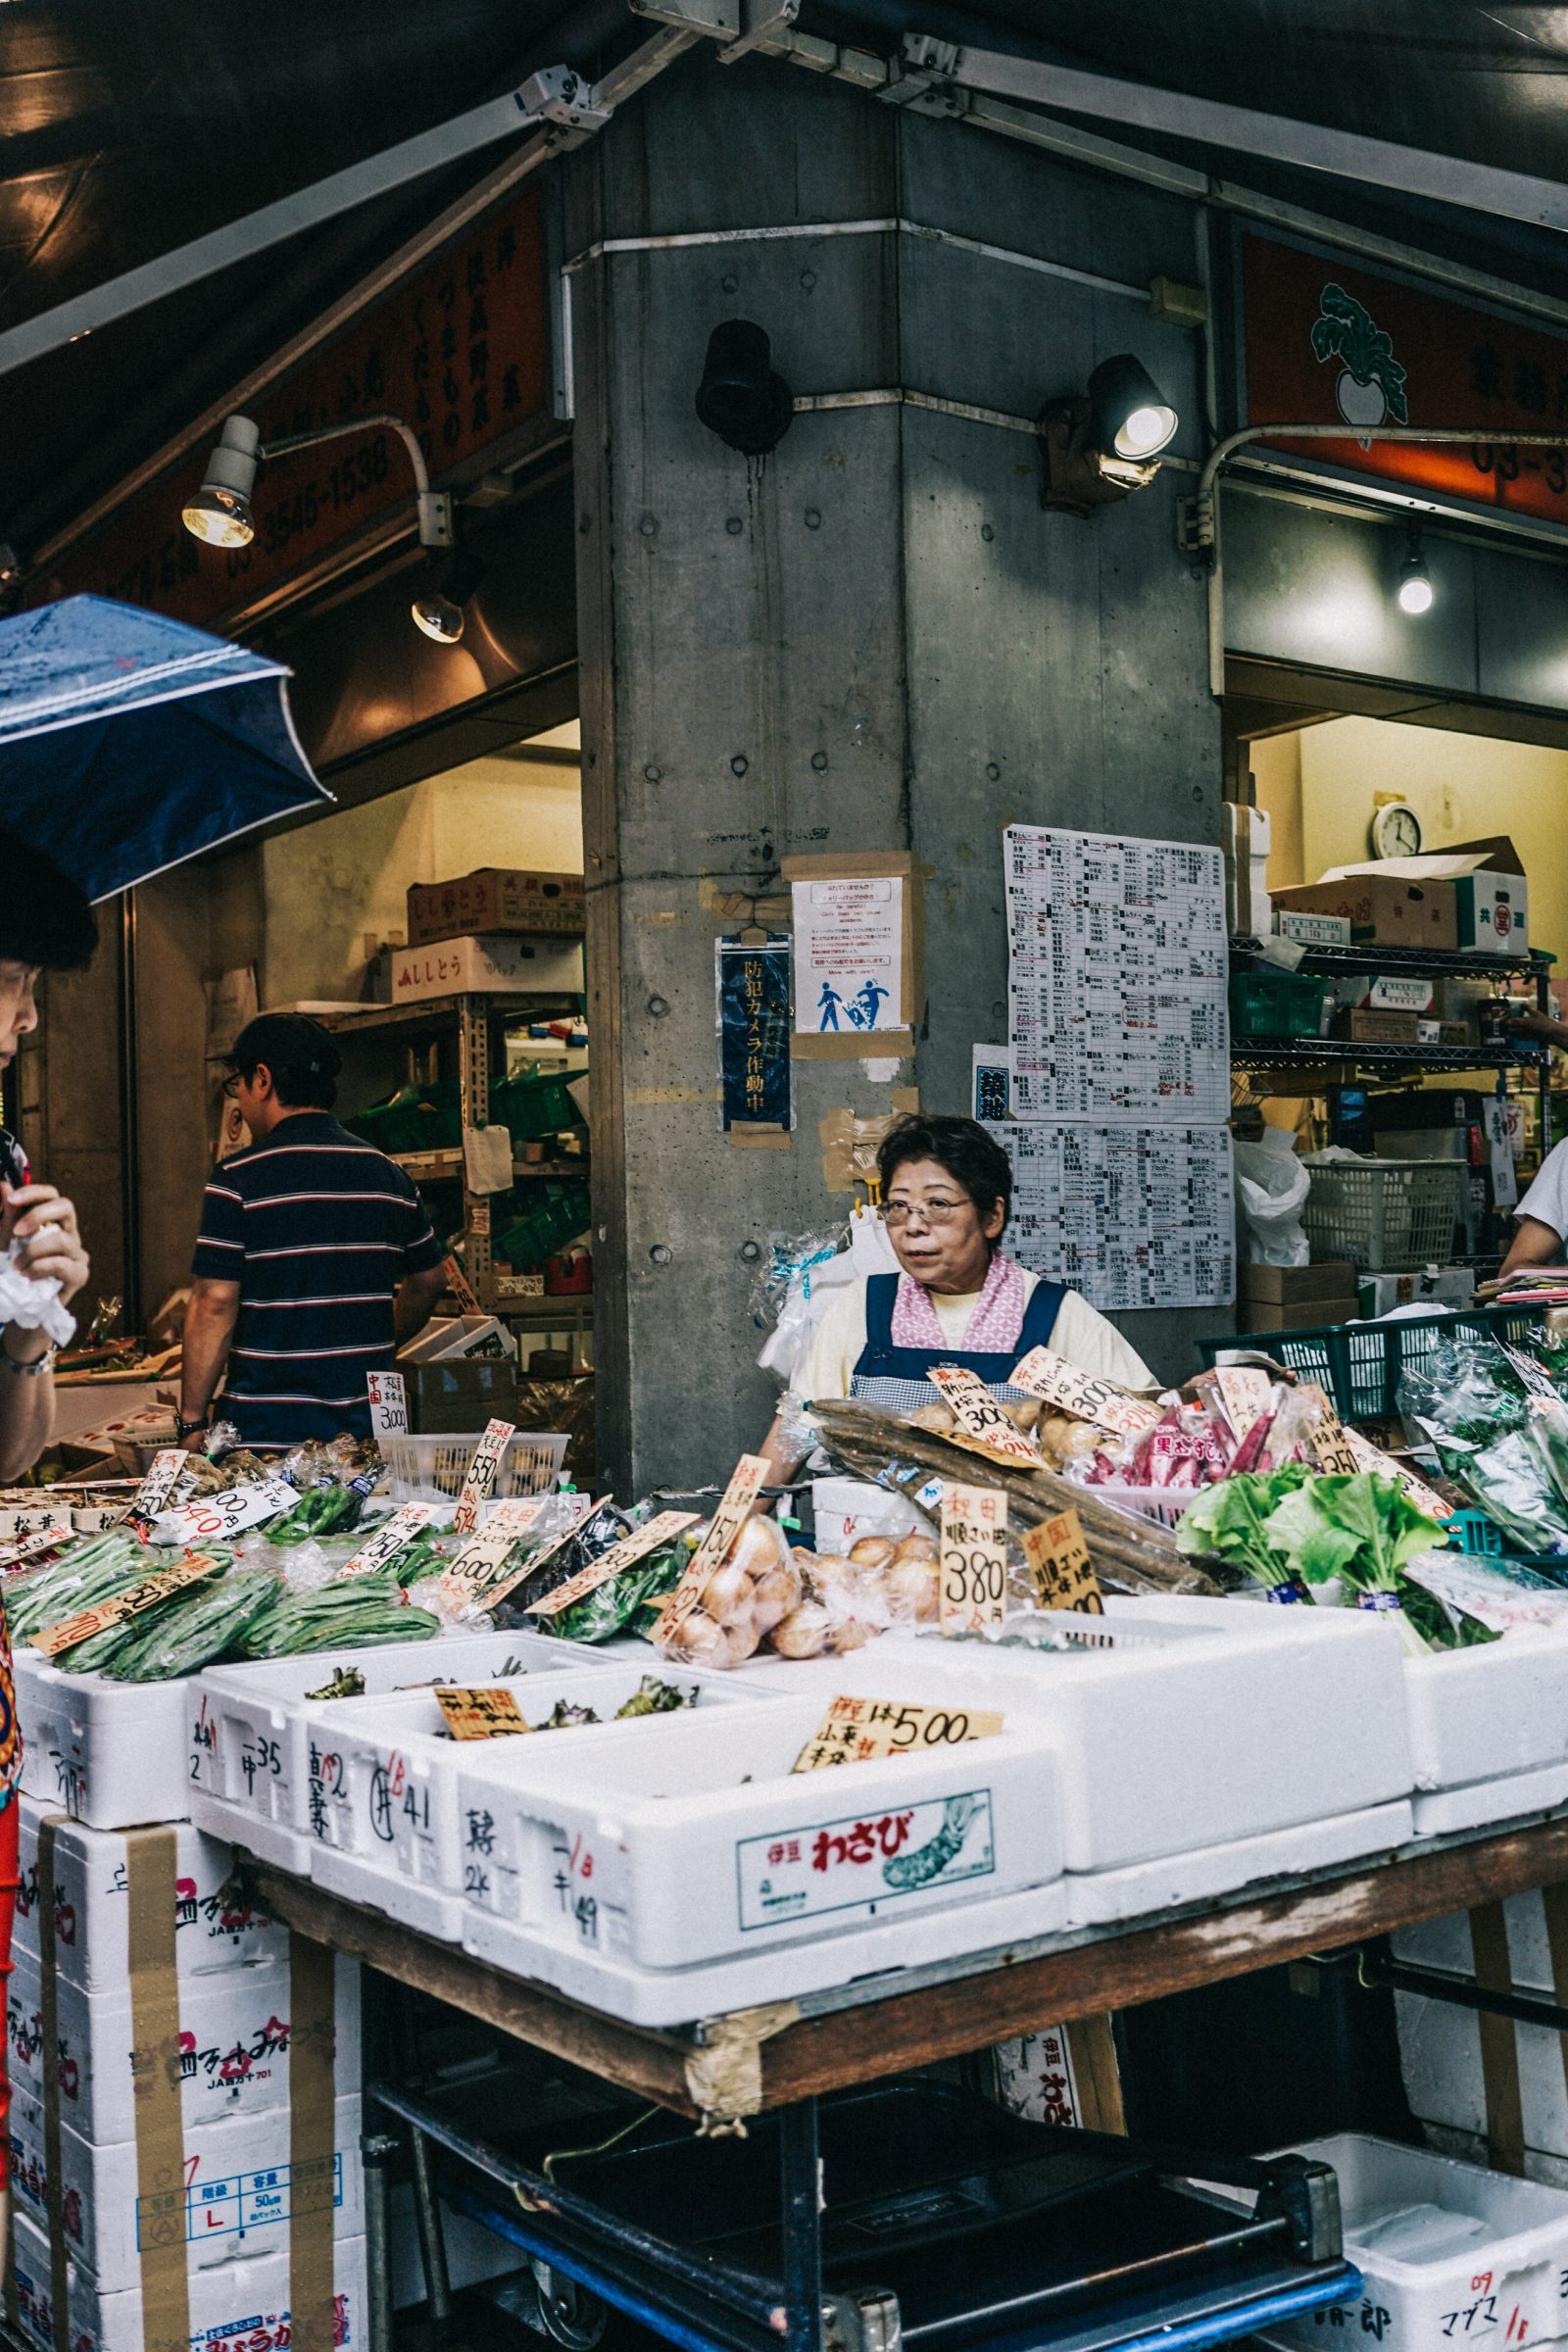 Tokyo_Travel_Guide-Fish_Market-Harajuku-Levis_Denim_Skirt-Off_The_Shoulders_Top-YSL_Sneakers-Outfit-Collage_Vintage-Street_Style-19